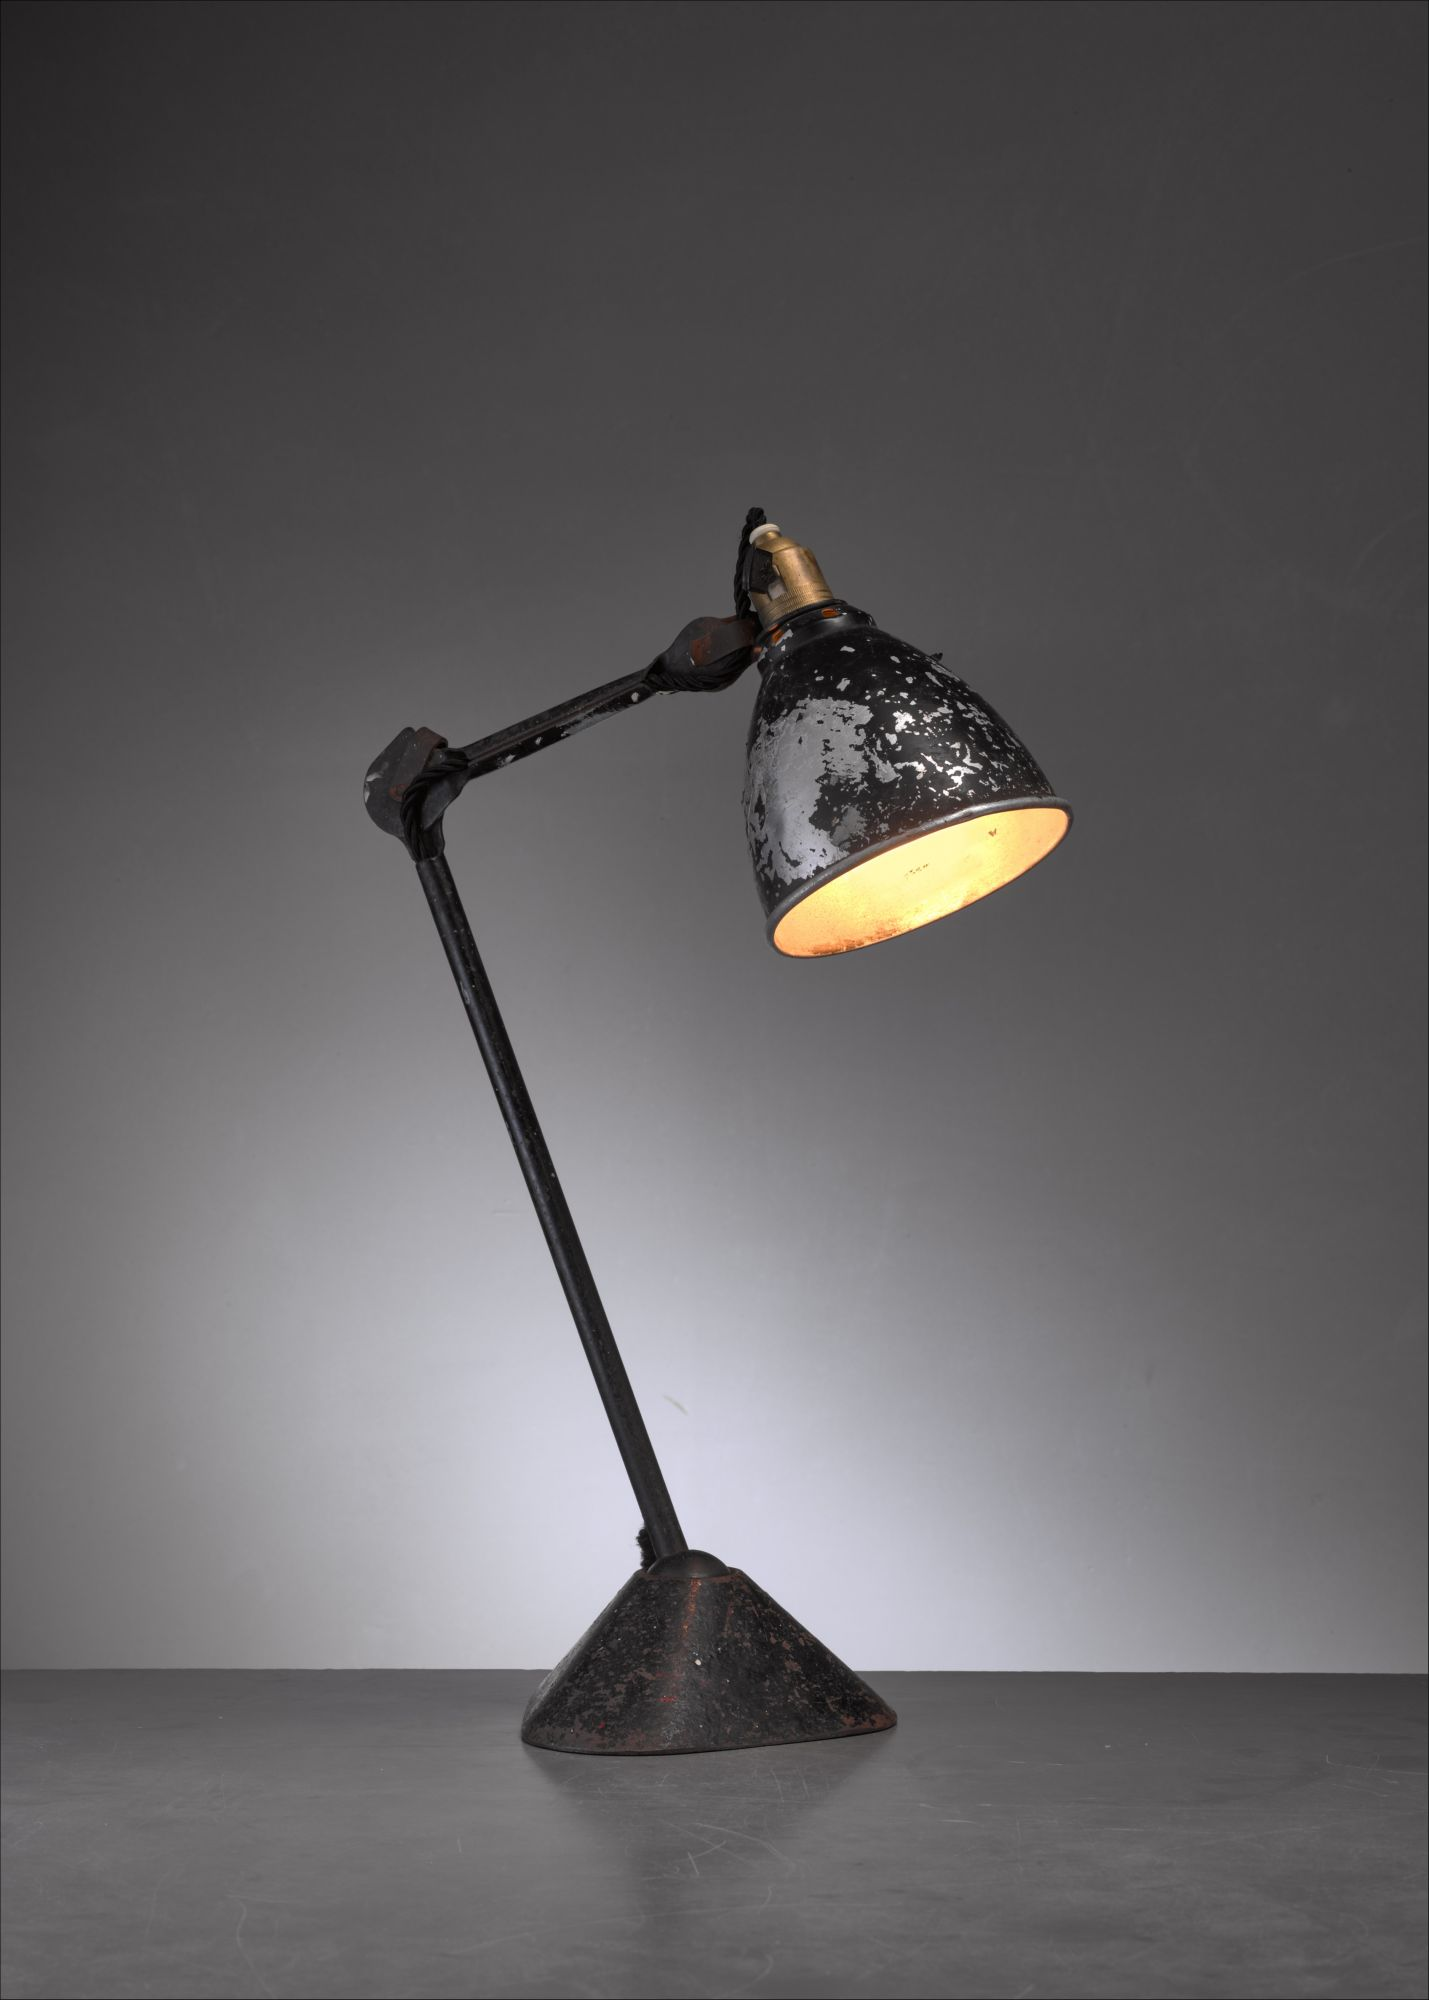 Lampe Gras Lampe Gras Table Lamp By Didier Des Gachons And Ravel France 1920s